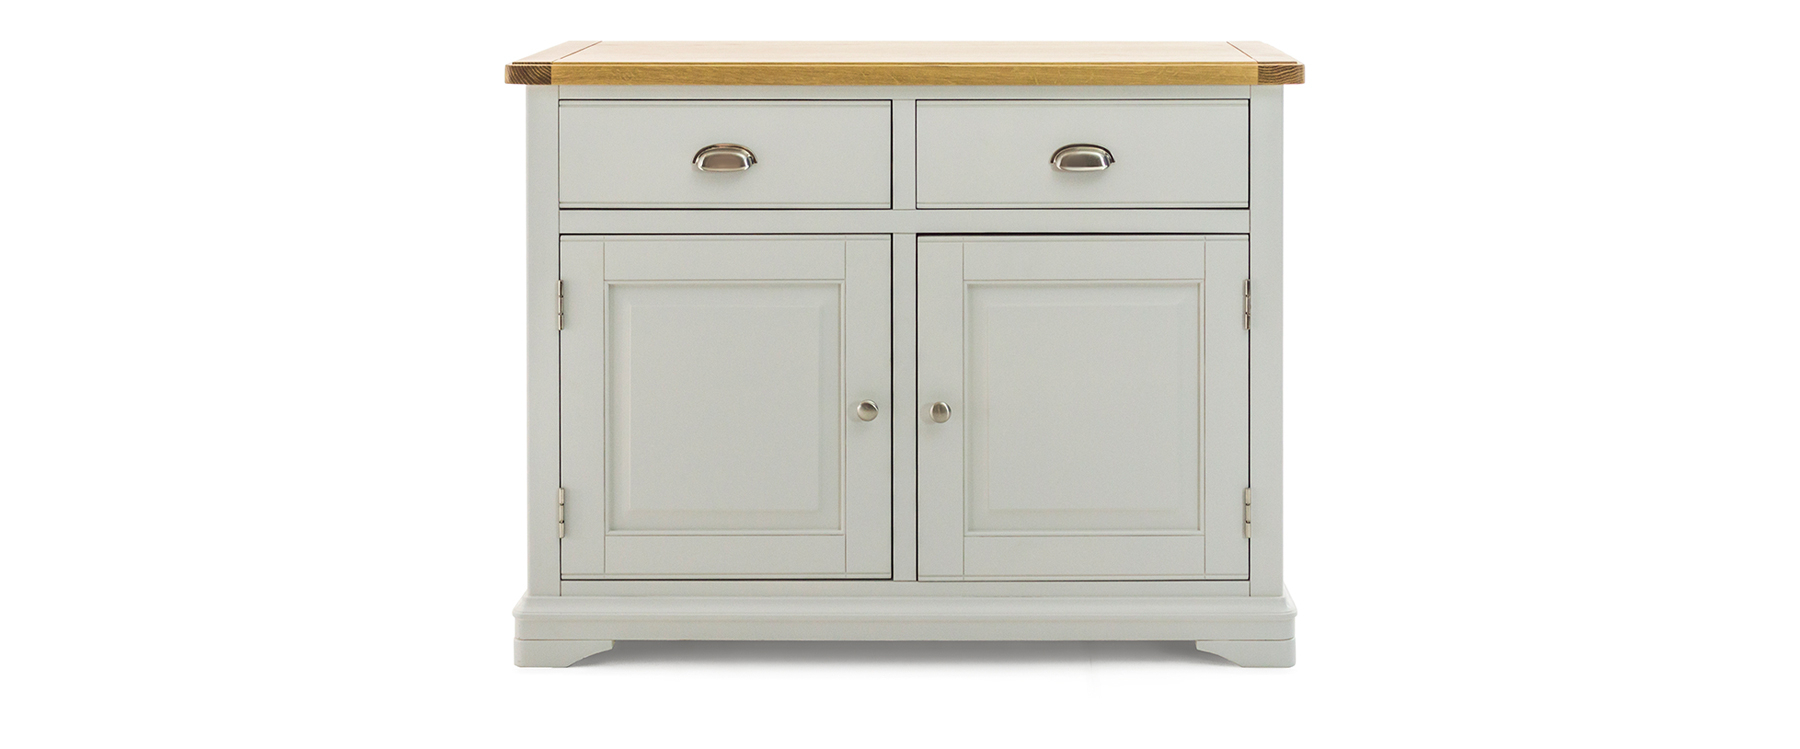 Gorgeous Small Shallow Sideboard Village Room Furniture Inside Annecy Sideboards (View 8 of 20)